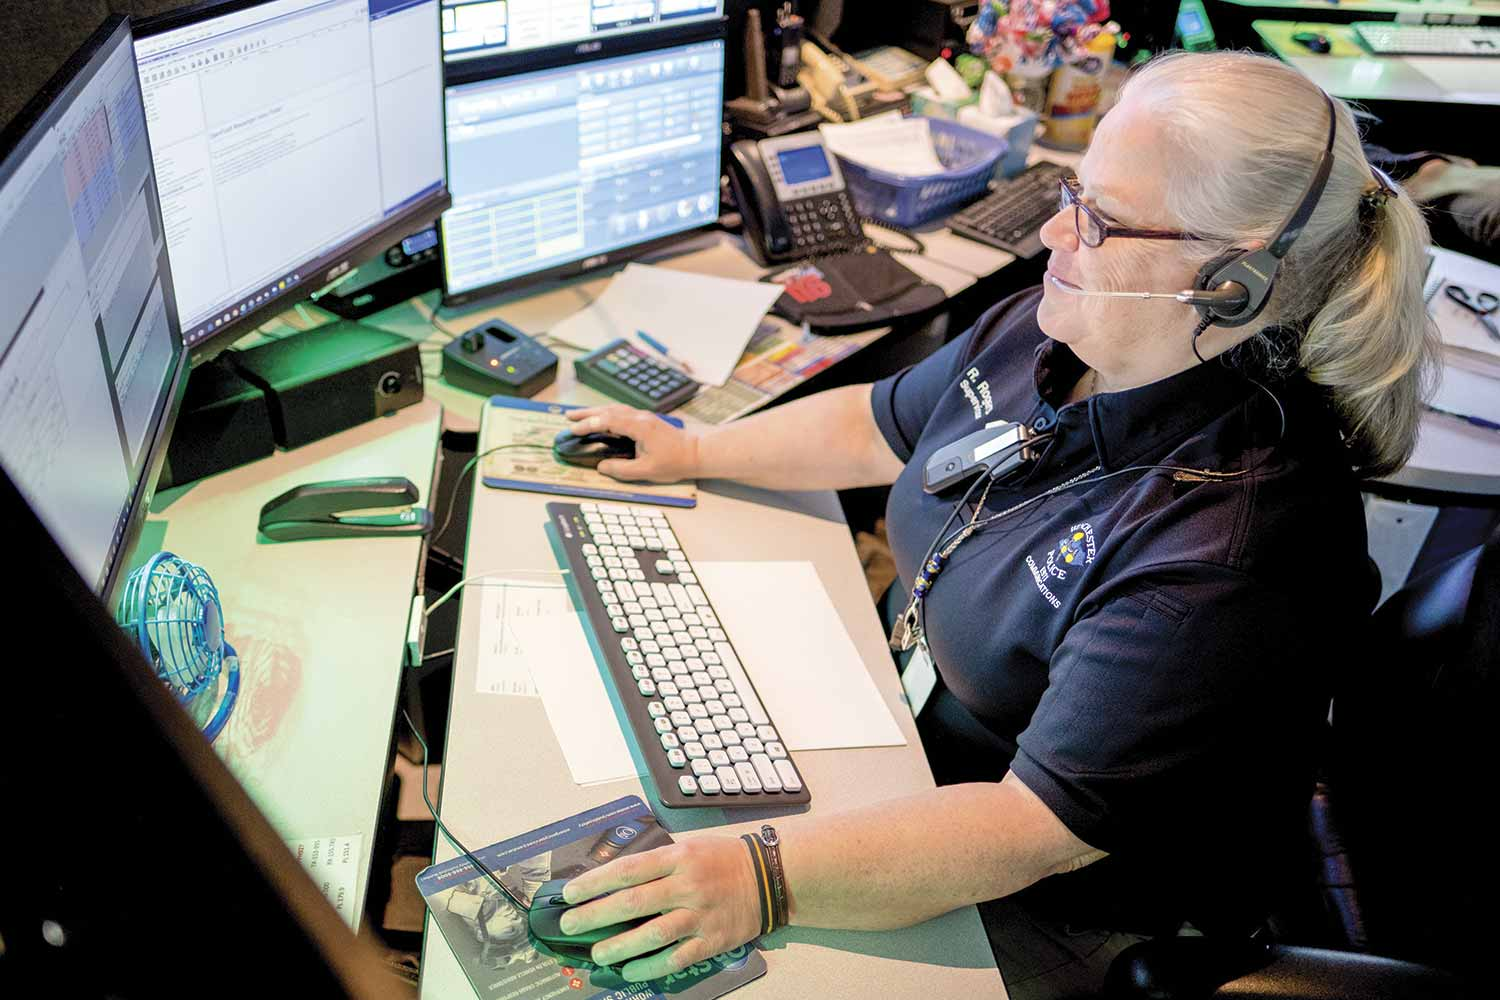 Winchester Police Communications Supervisor Rhonda Rogers answers an emergency call during an early-morning shift. Rogers said the Career Development Program helps transform dispatching from a run-of-the-mill job to a satisfying career. (Photo by Jim Robertson)